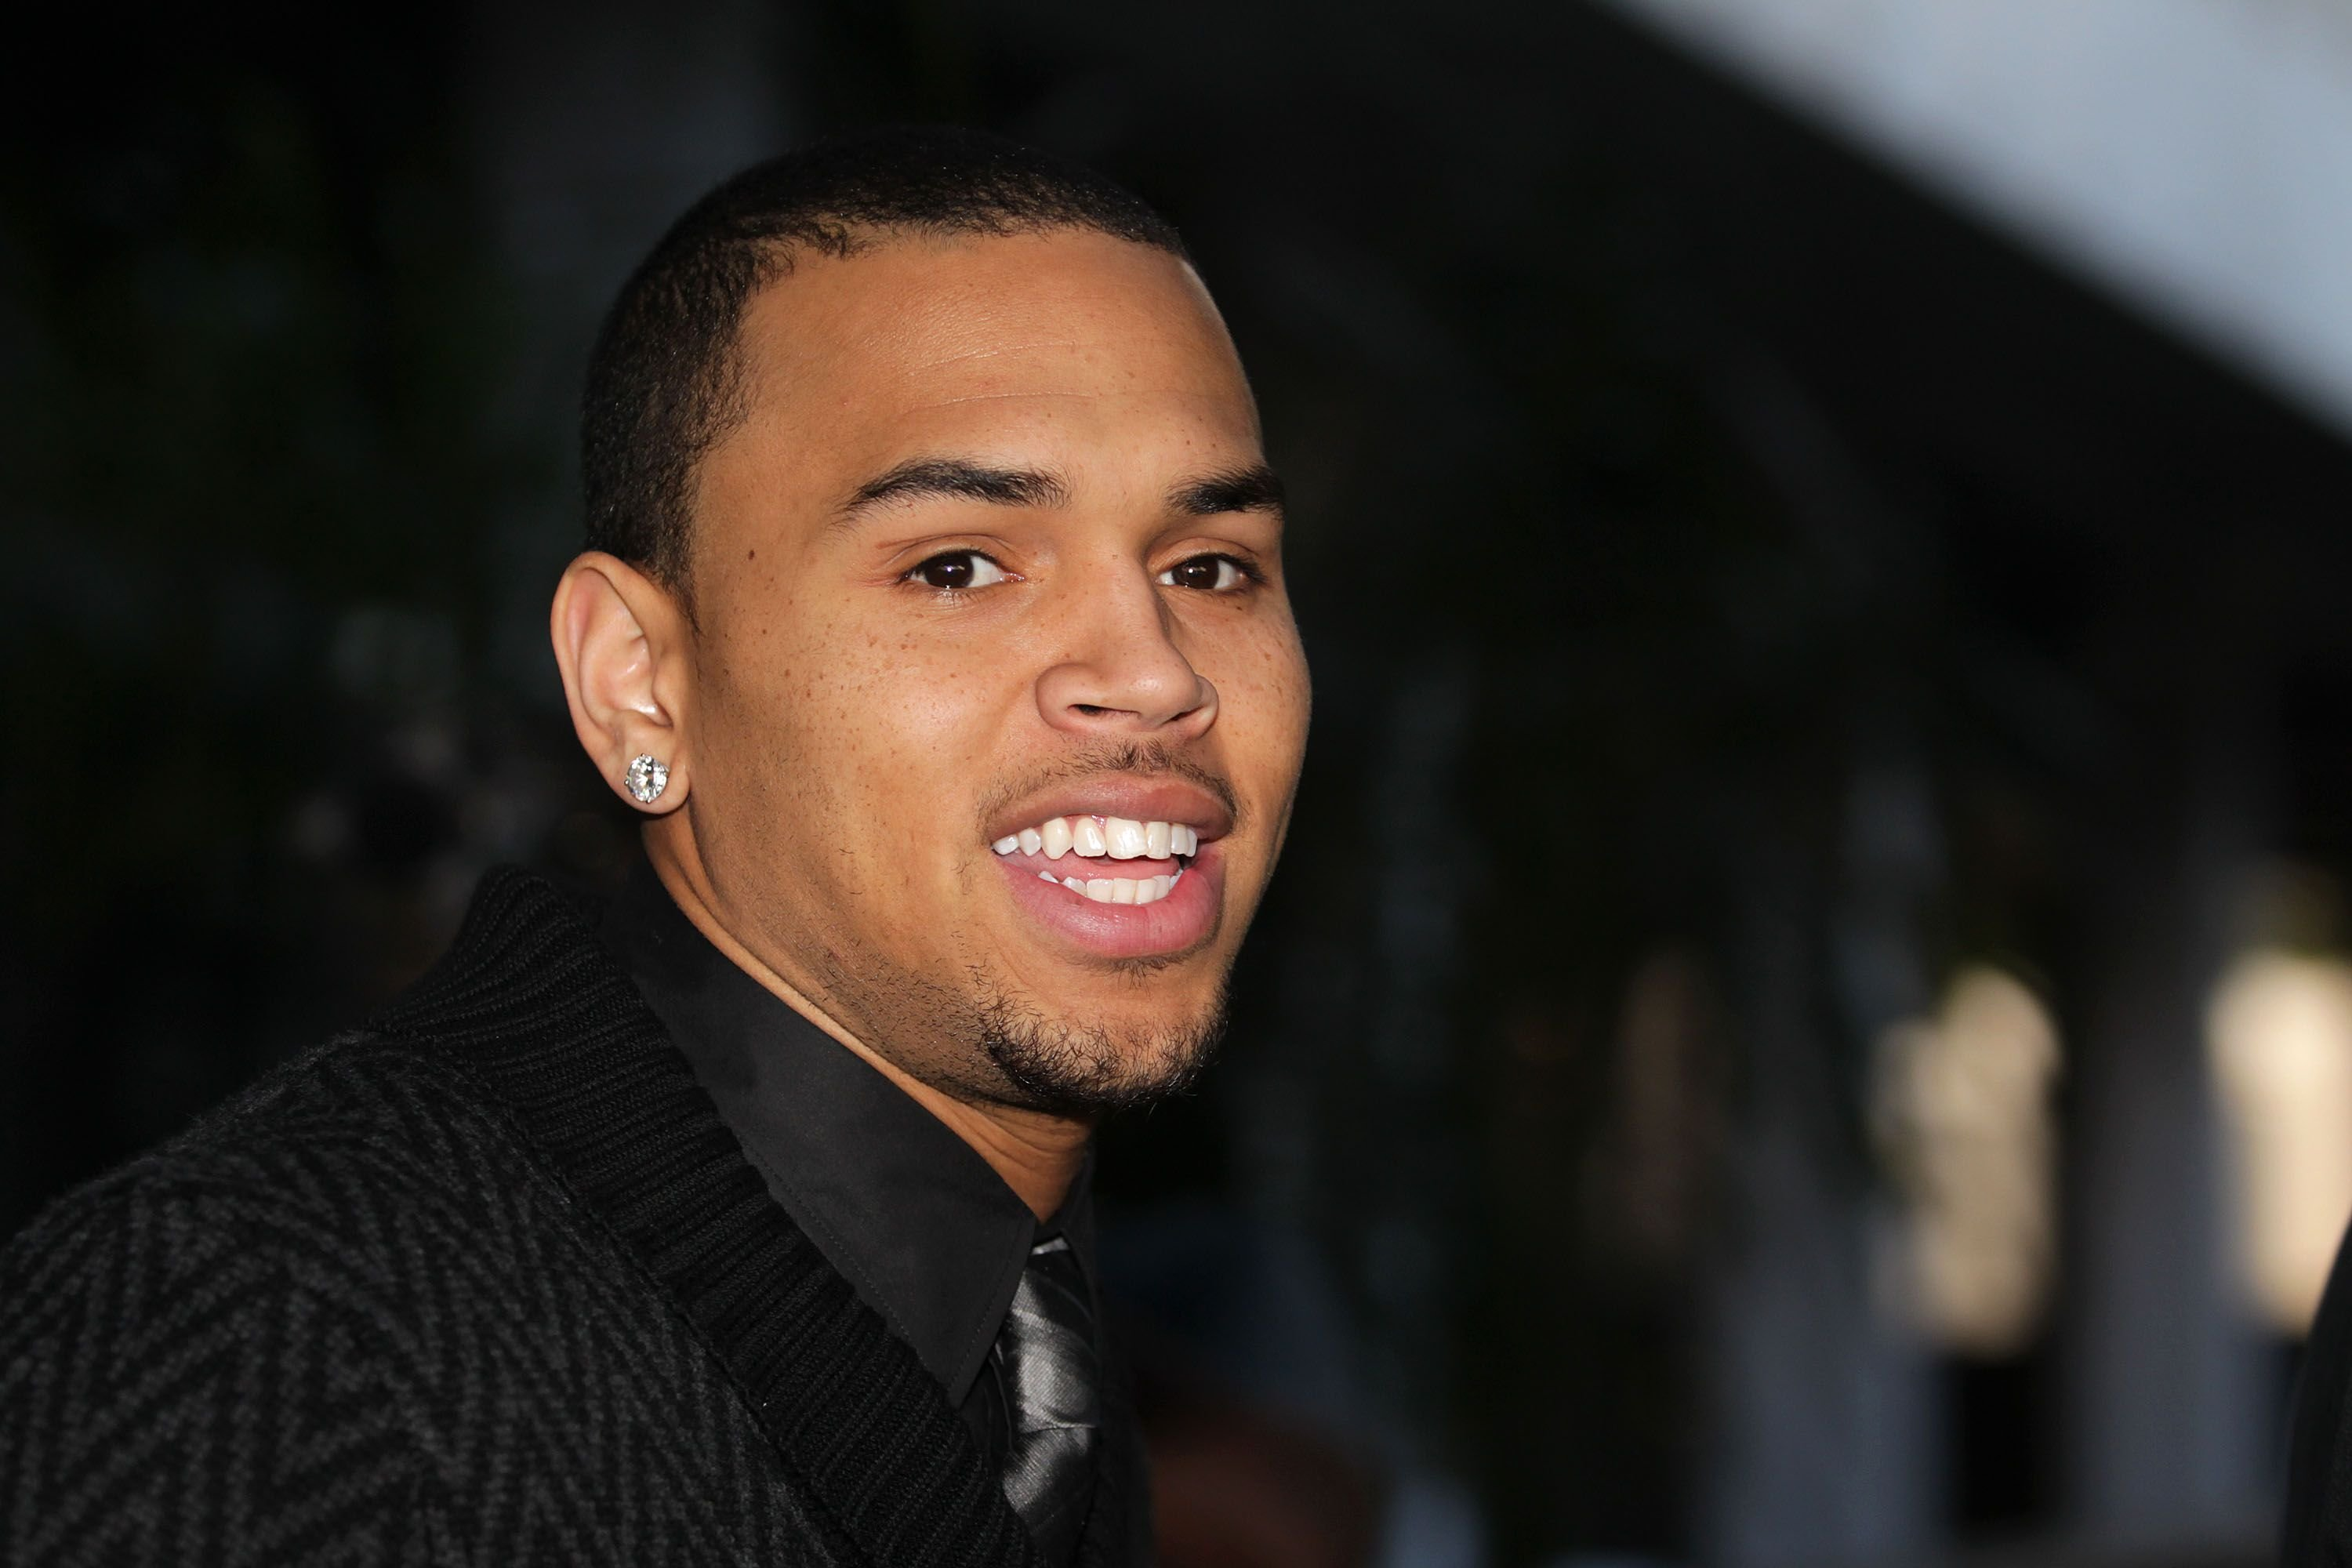 Artist Chris Brown leaves the Los Angeles courthouse in California on January 28, 2011 | Photo: Frederick M. Brown/Getty Images